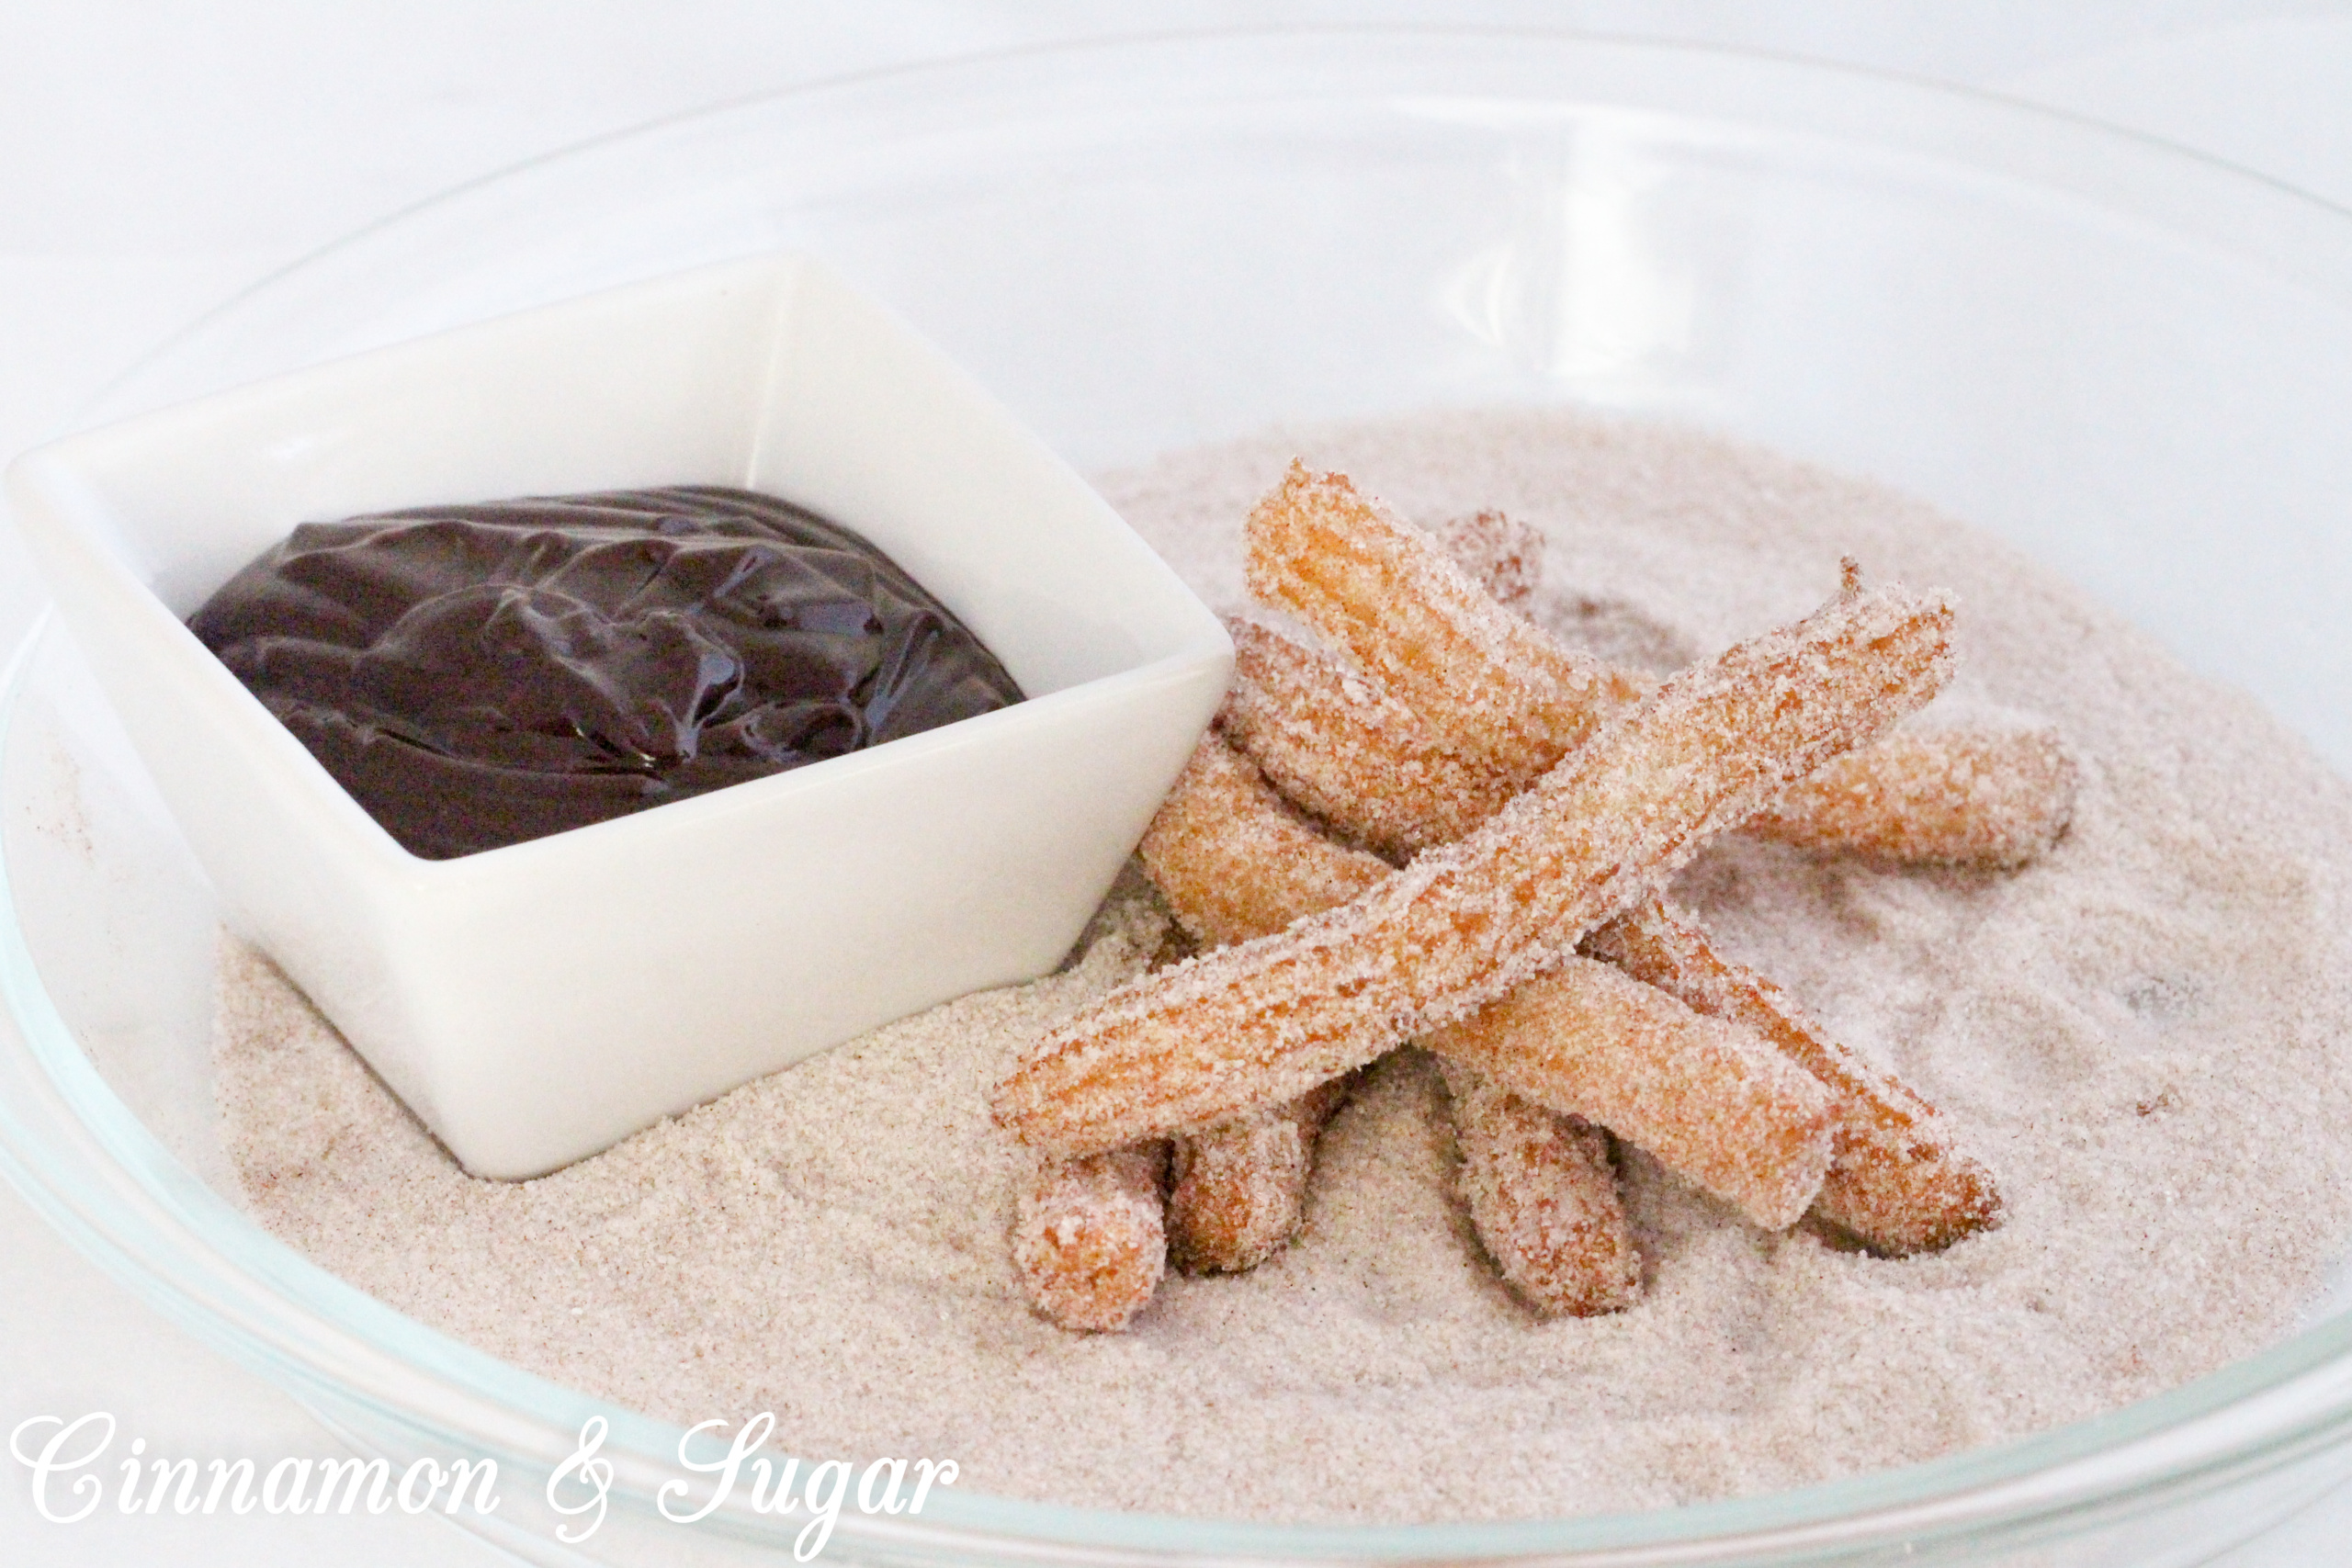 It's not that difficult to make fresh, hot from the skillet, churros. Rolled in cinnamon and sugar, and then served with warm Mexican chocolate dipping sauce, this dessert is a scrumptious treat! Recipe shared with permission granted by S.C. Perkins, author of LINEAGE MOST LETHAL.